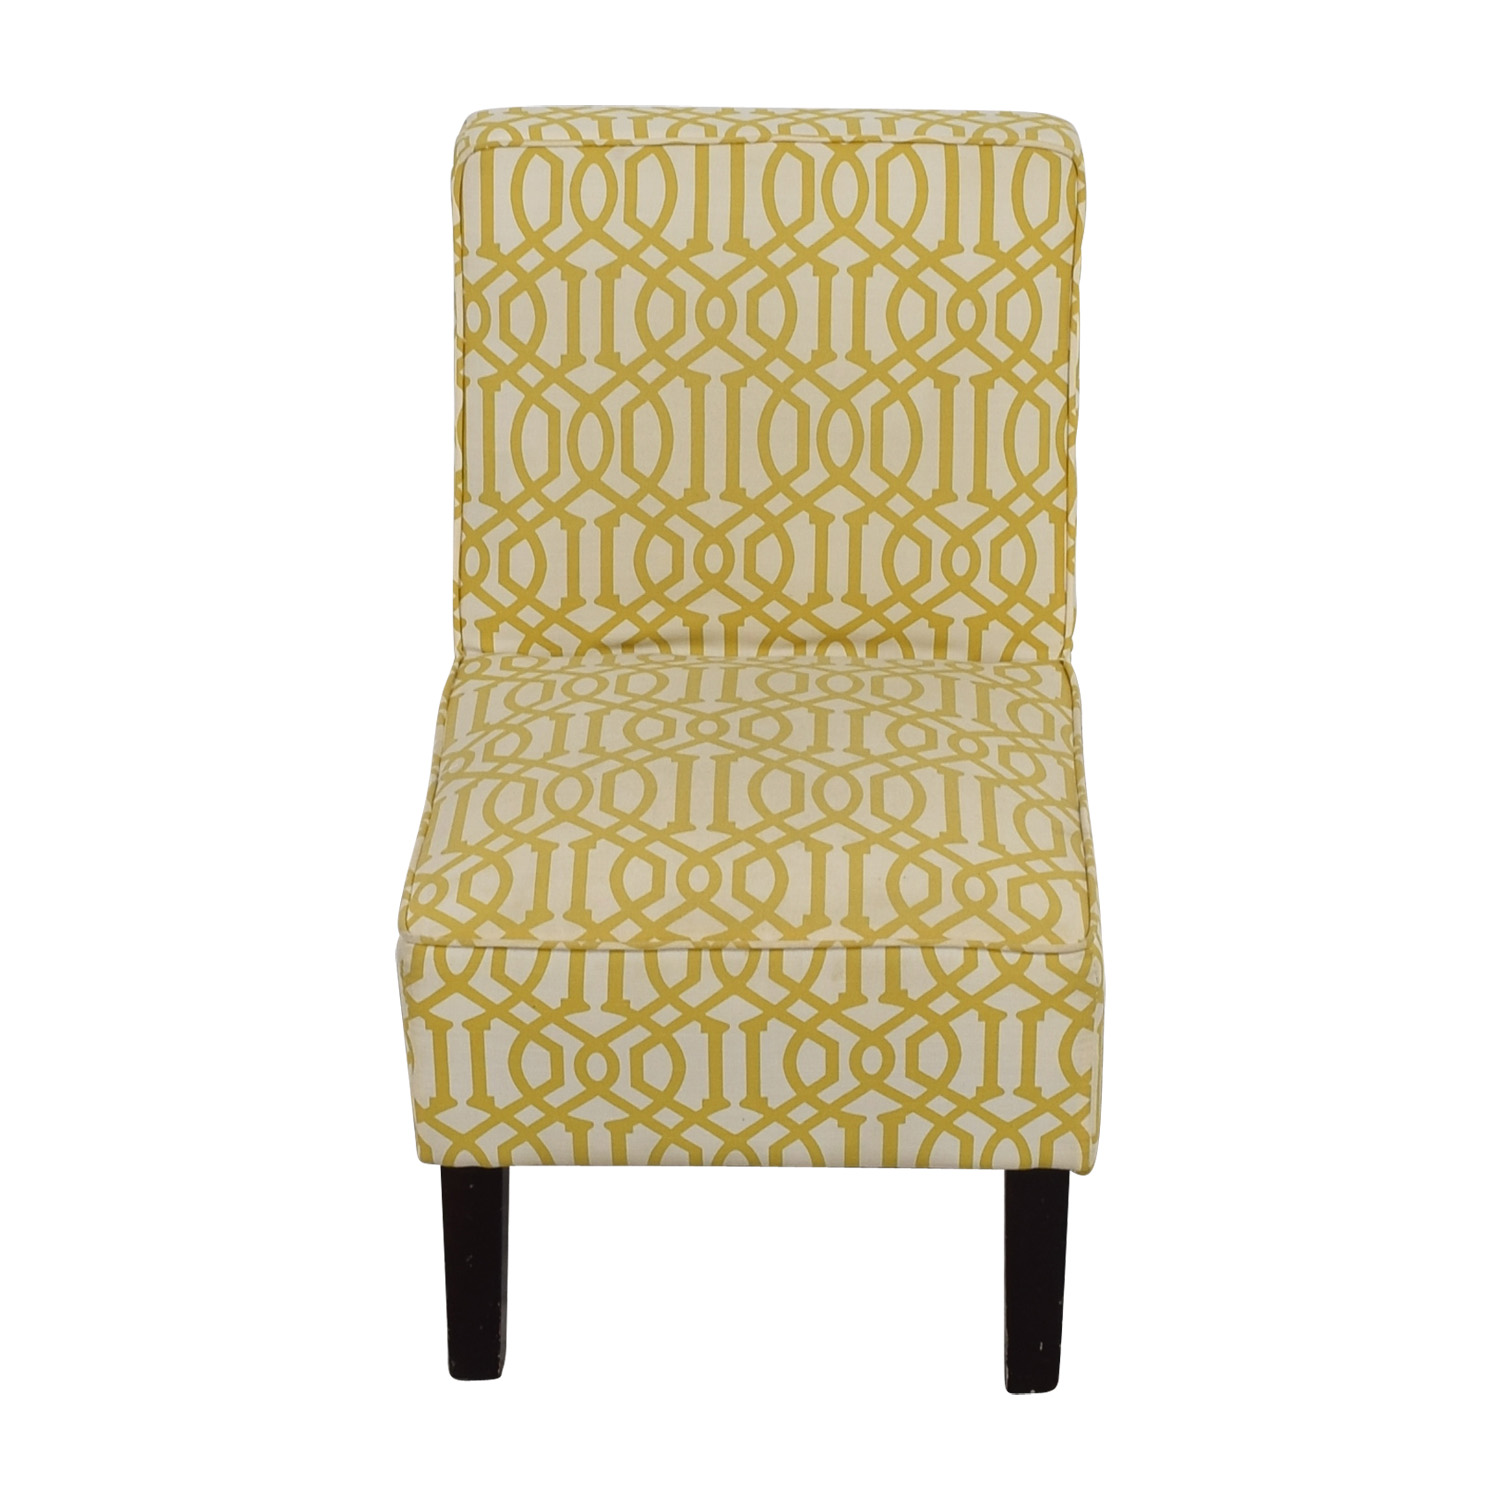 White Accent Chairs Used.85 Off Yellow And White Accent Chair Chairs